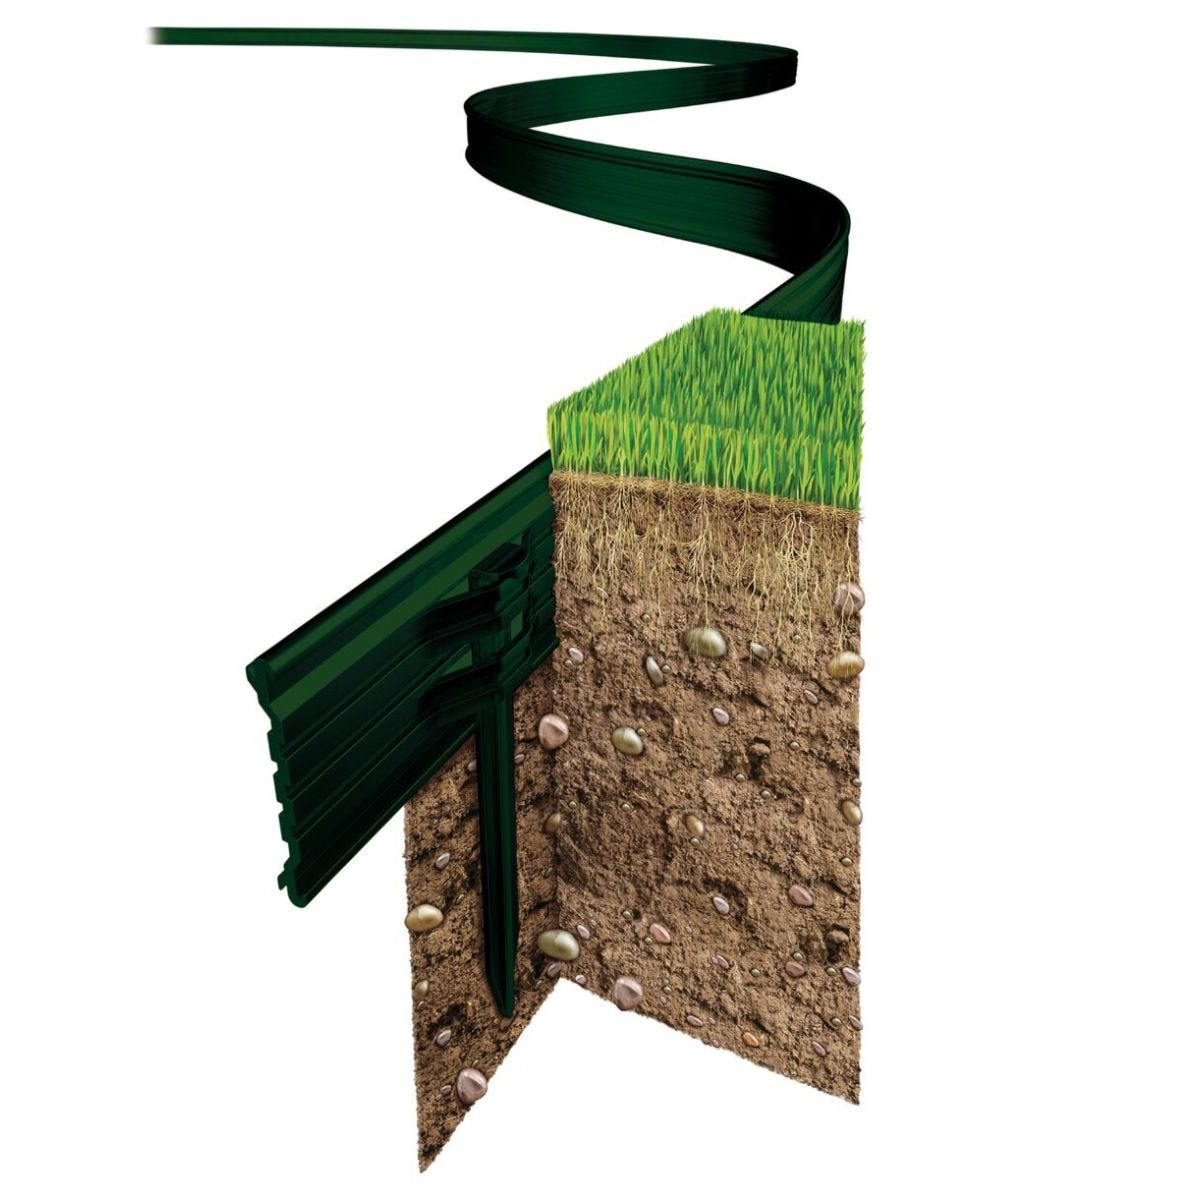 Swift Edge Gardening Edging - Green